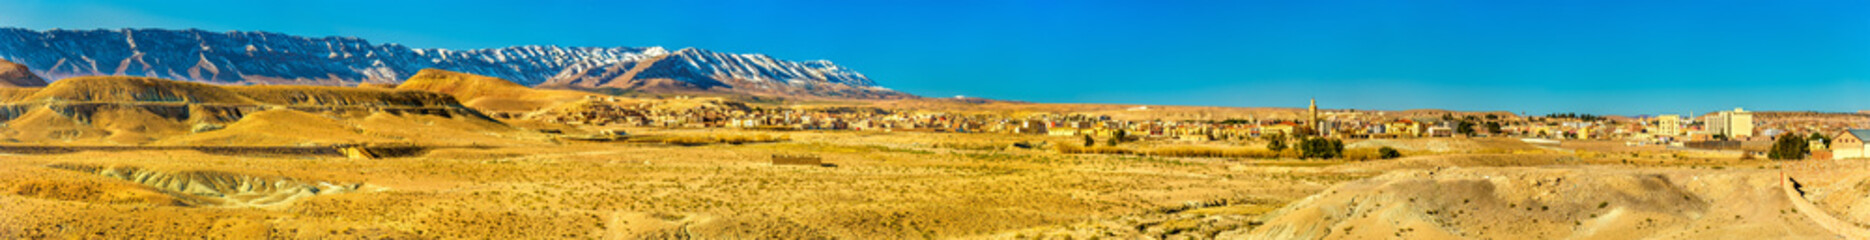 Panorama of the Atlas Mountains at Midelt, Morocco